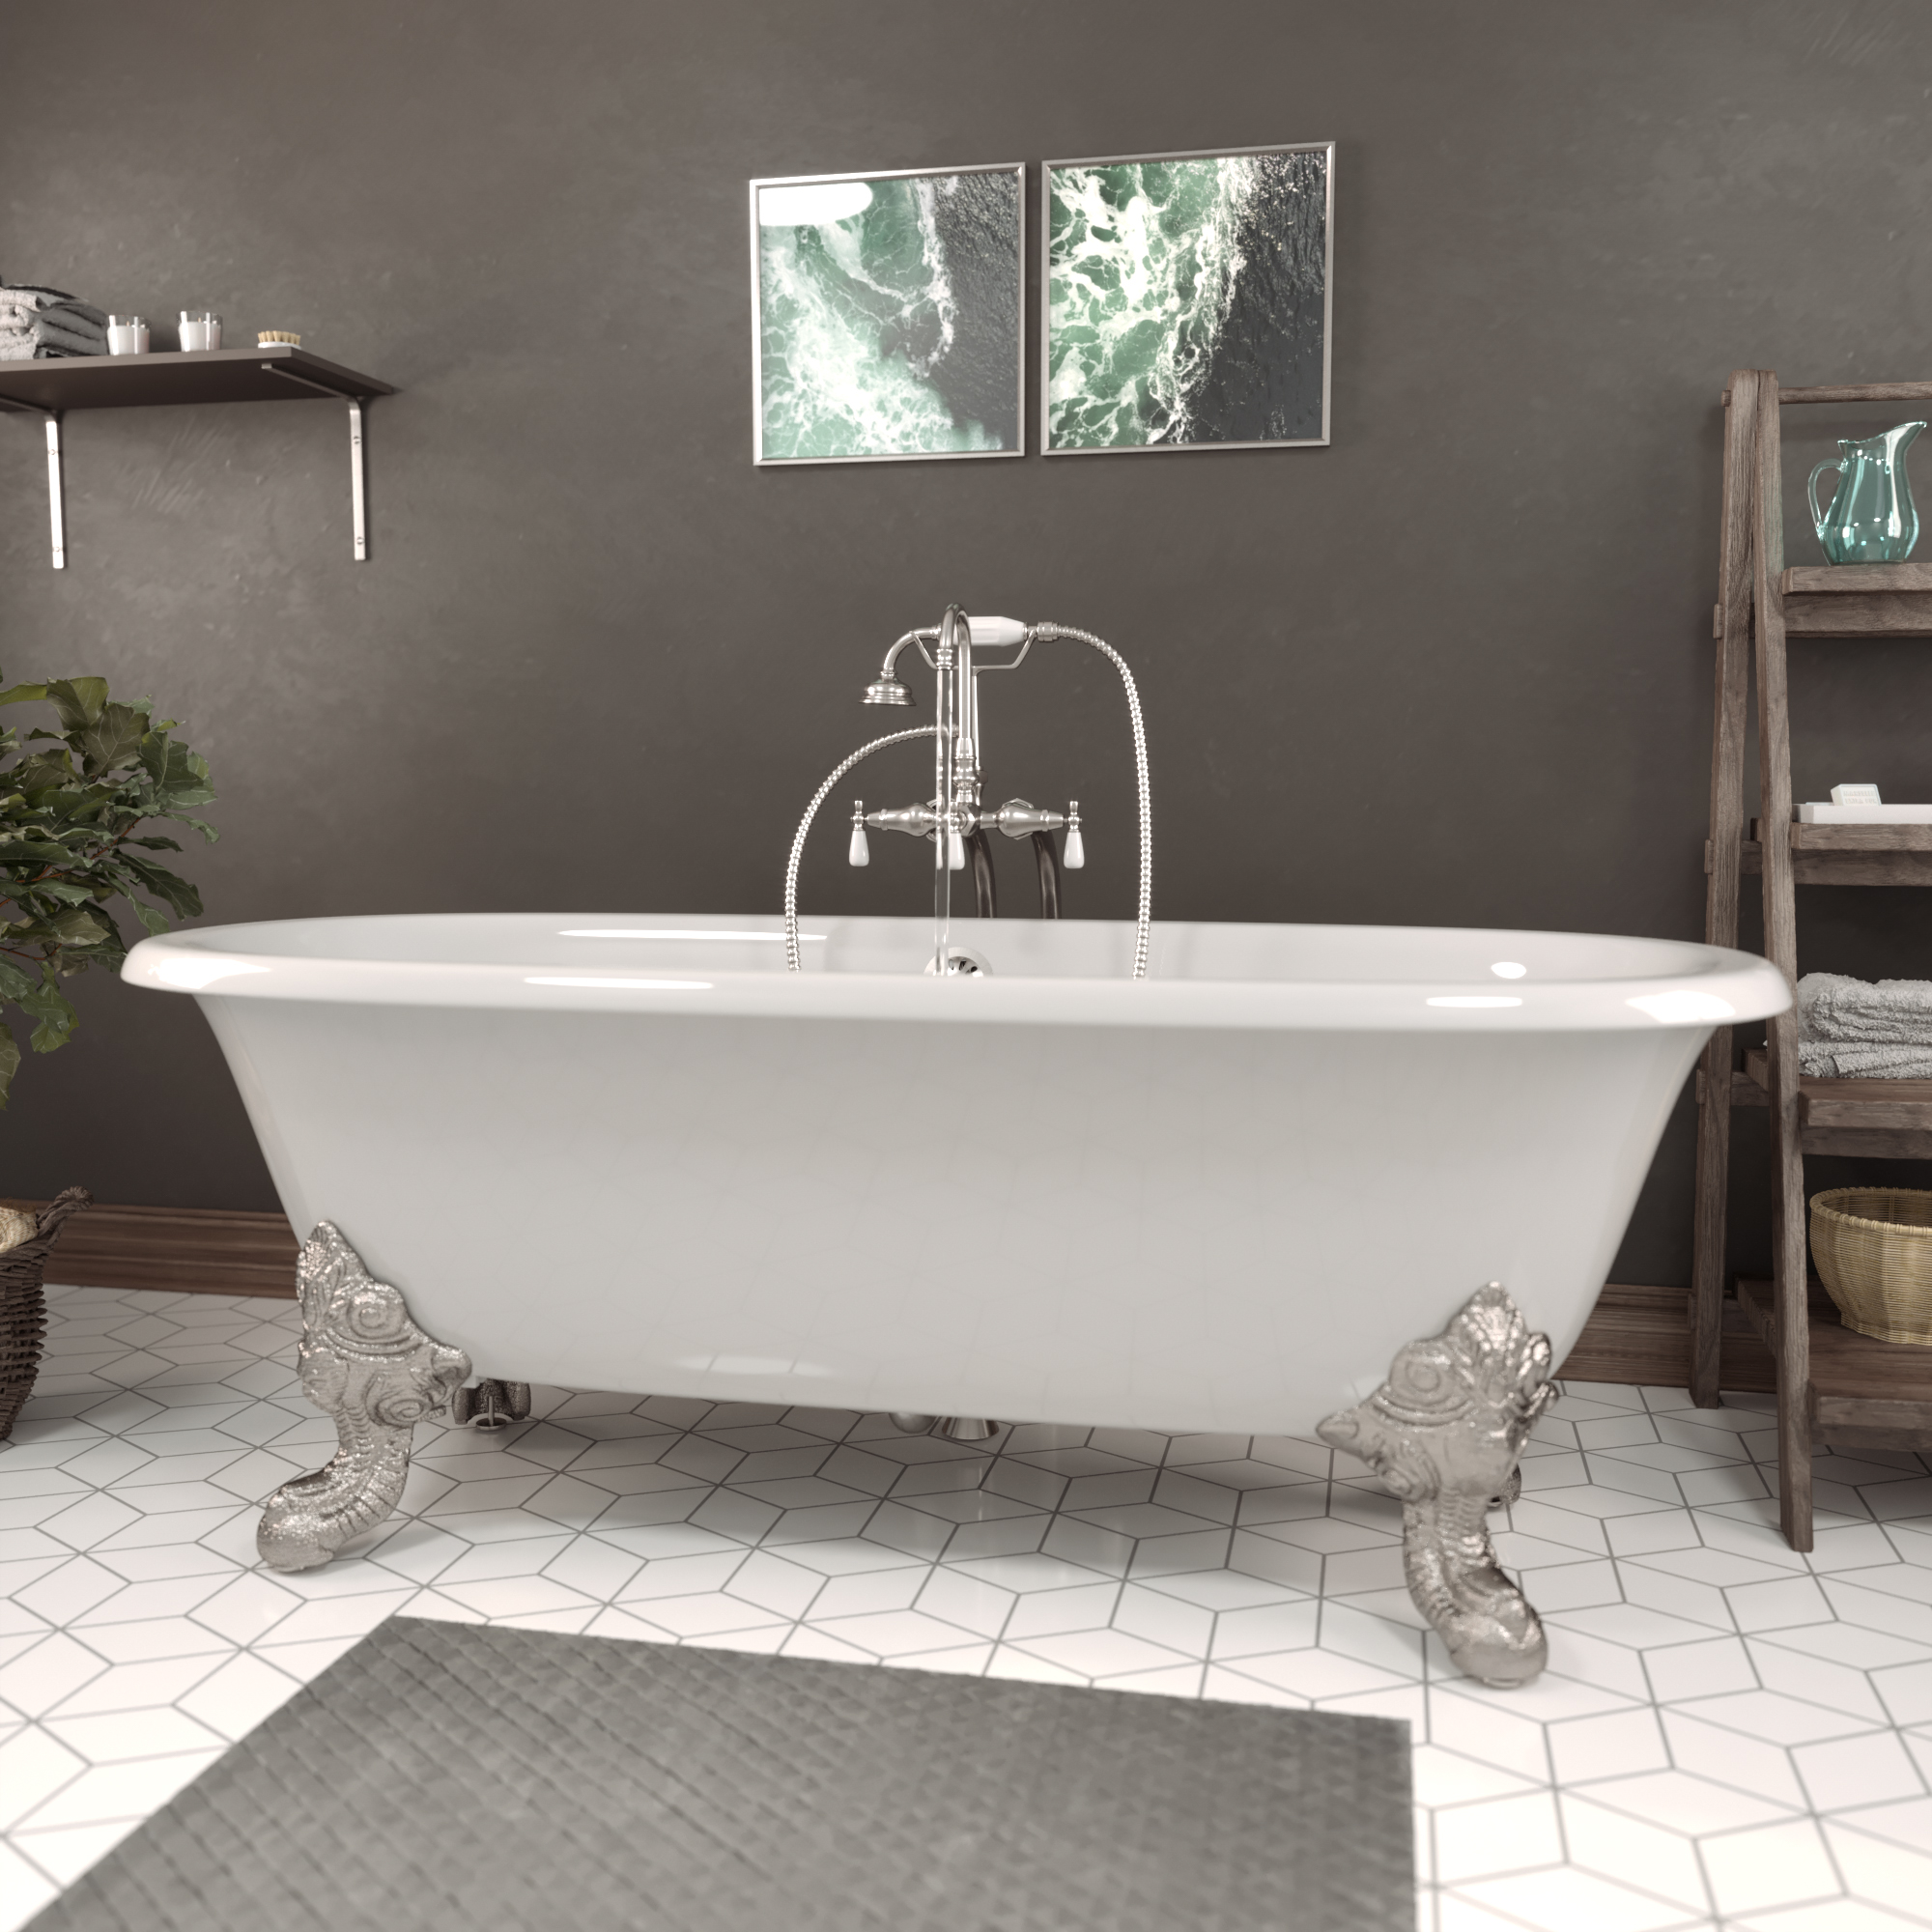 Cast Iron Double Ended Clawfoot Tub w/Faucet DE72-398684-BN